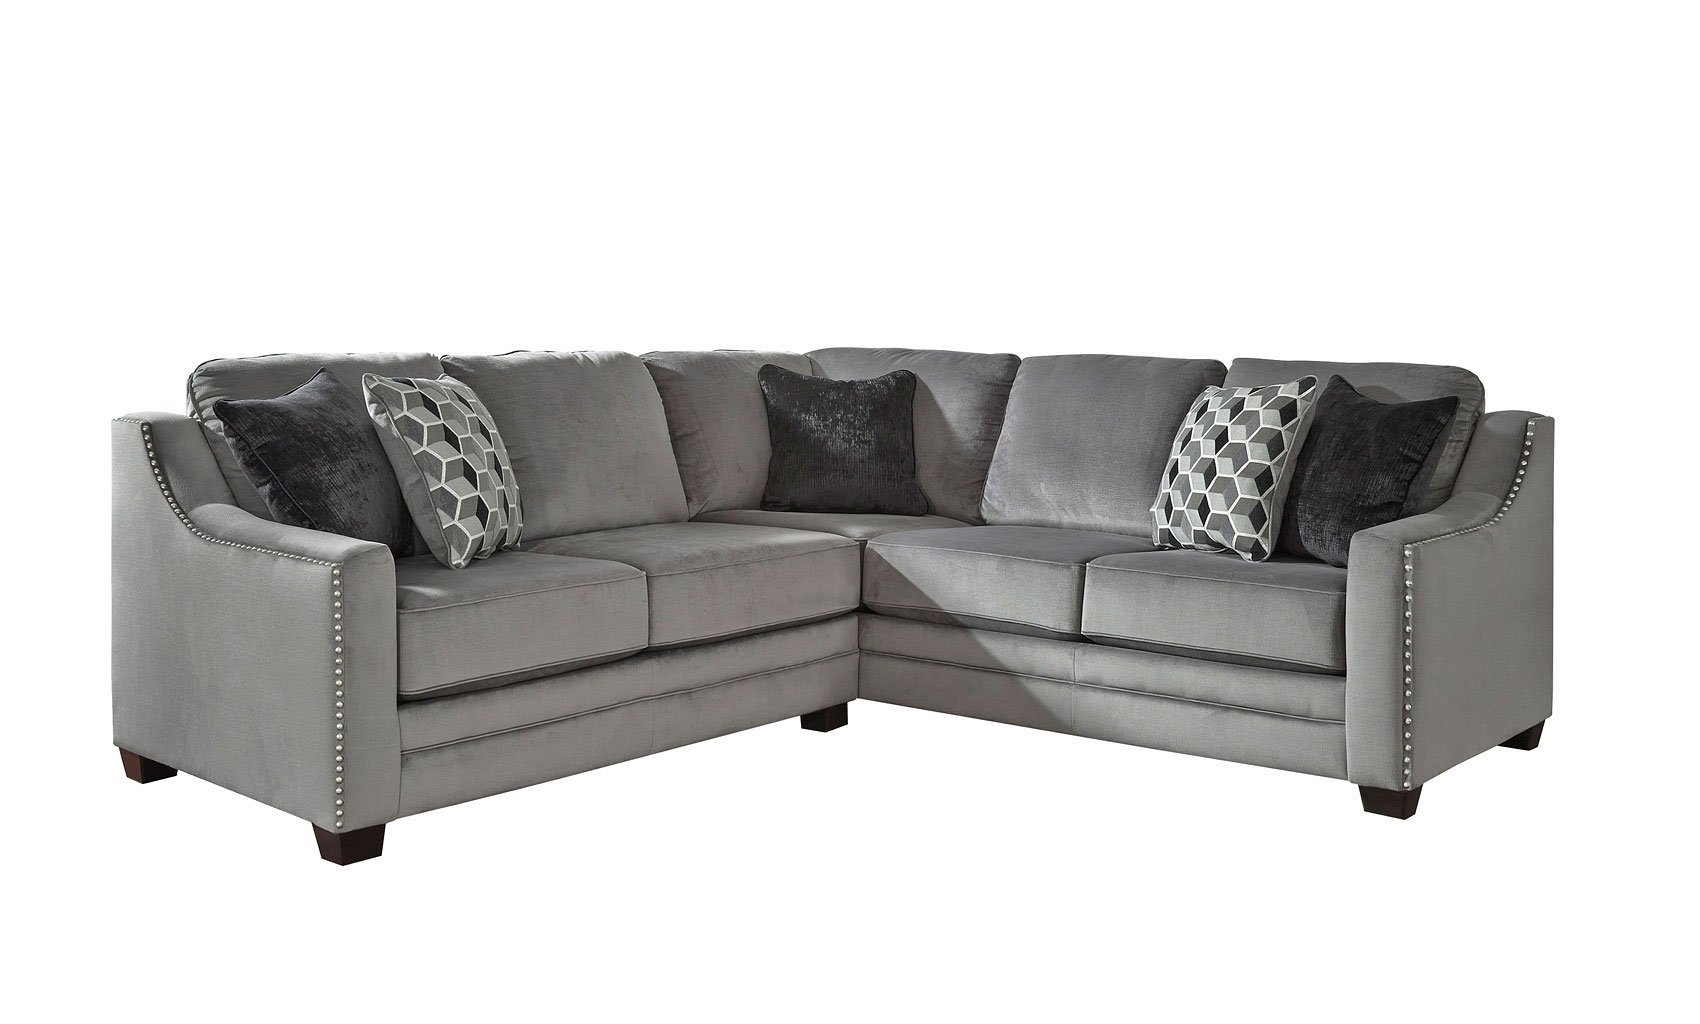 Loveseat Sectional | Whitecraftwoodard Mona Wicker Right Arm In Taron 3 Piece Power Reclining Sectionals With Right Facing Console Loveseat (Image 10 of 20)